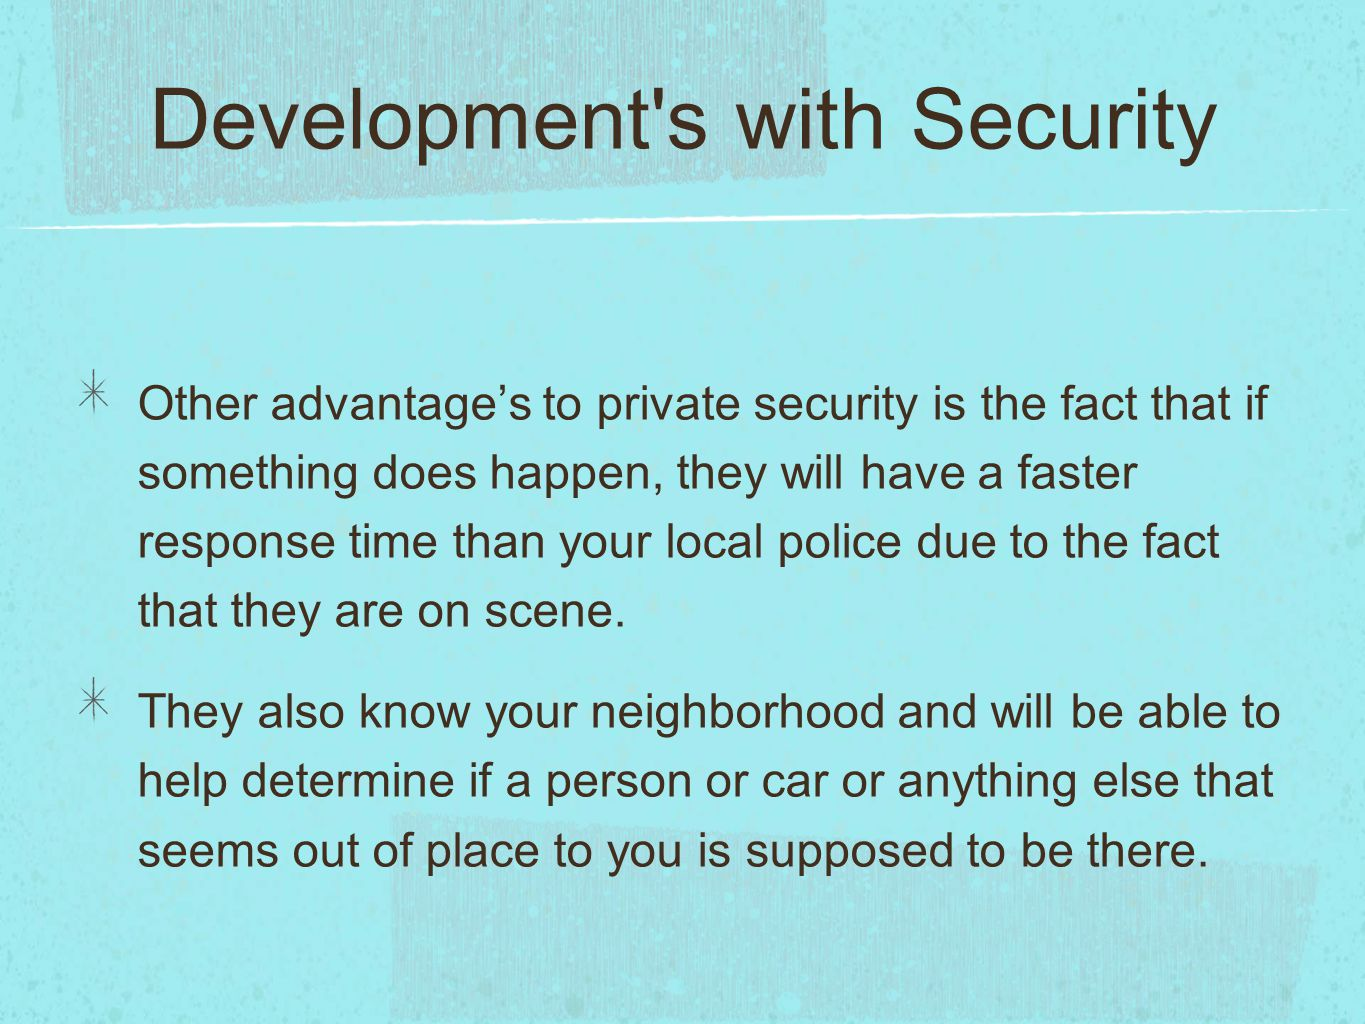 Development's with Security Other advantage's to private security is the fact that if something does happen, they will have a faster response time tha